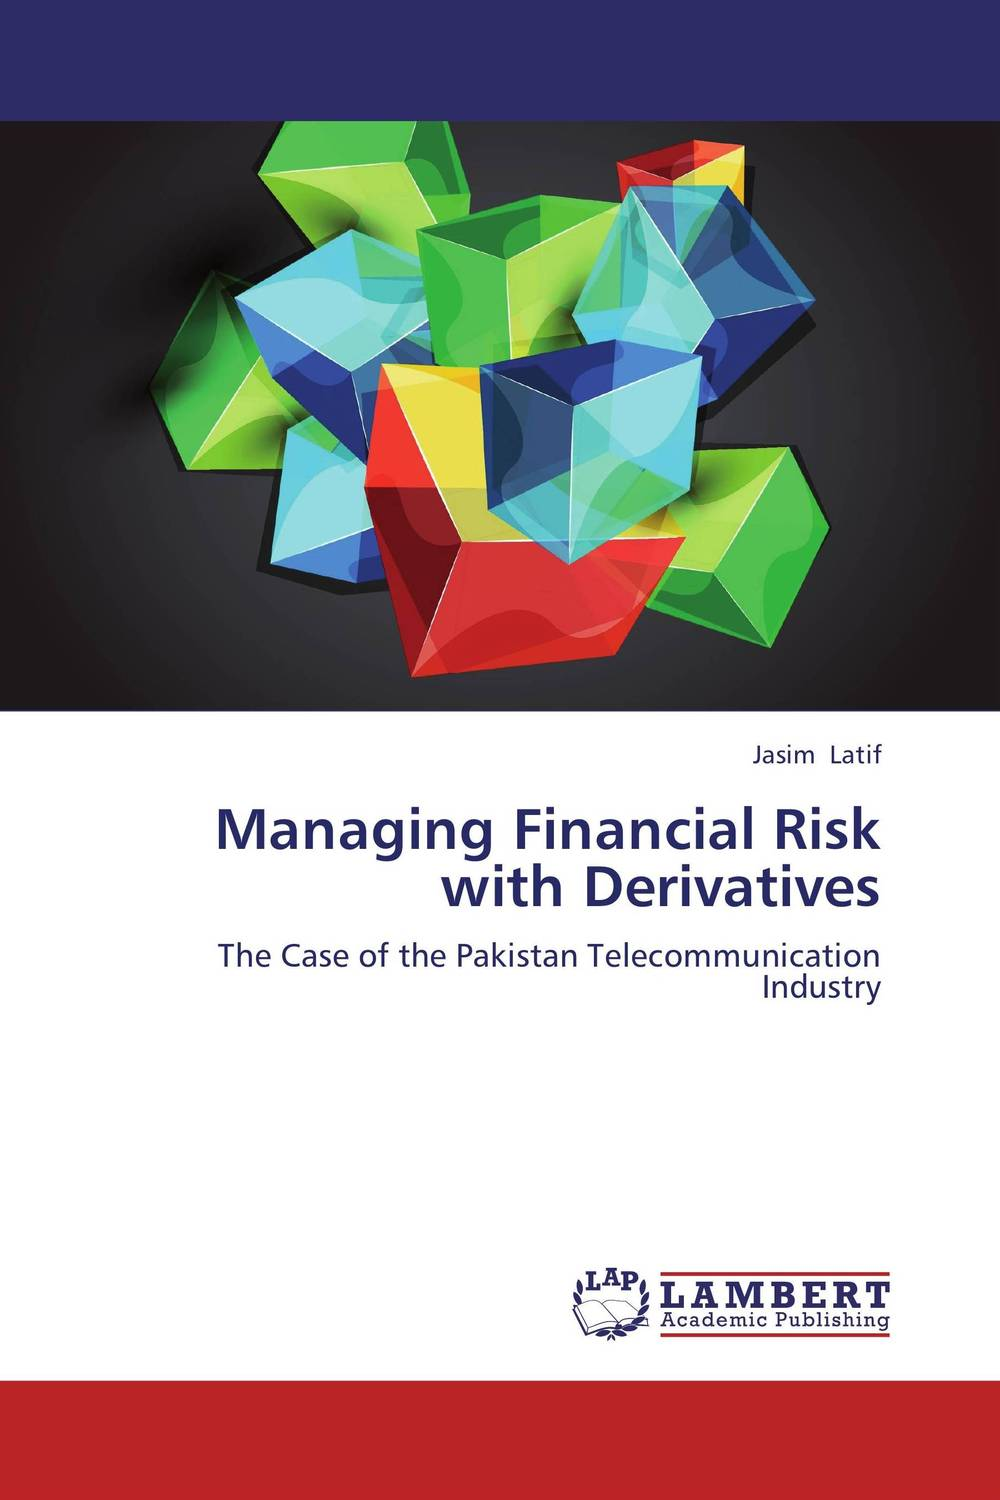 Managing Financial Risk with Derivatives